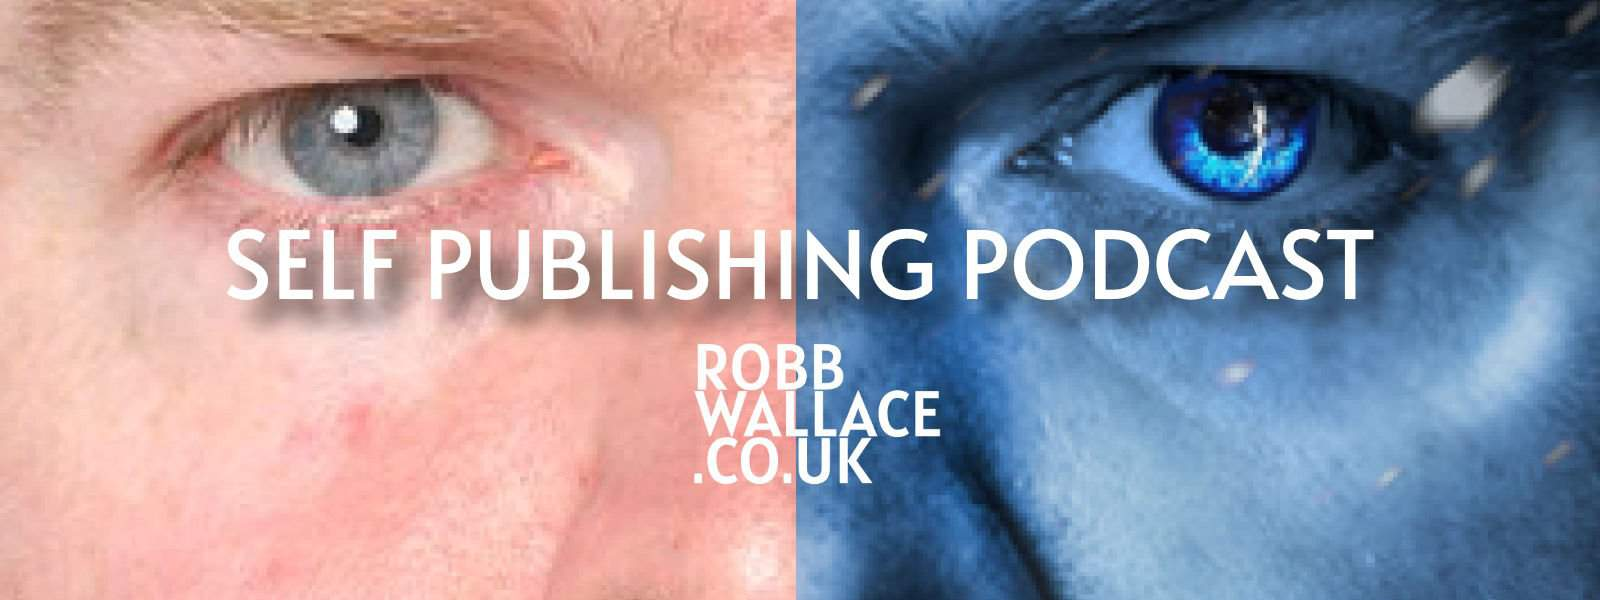 self-publishing-podcast-robb-wallace